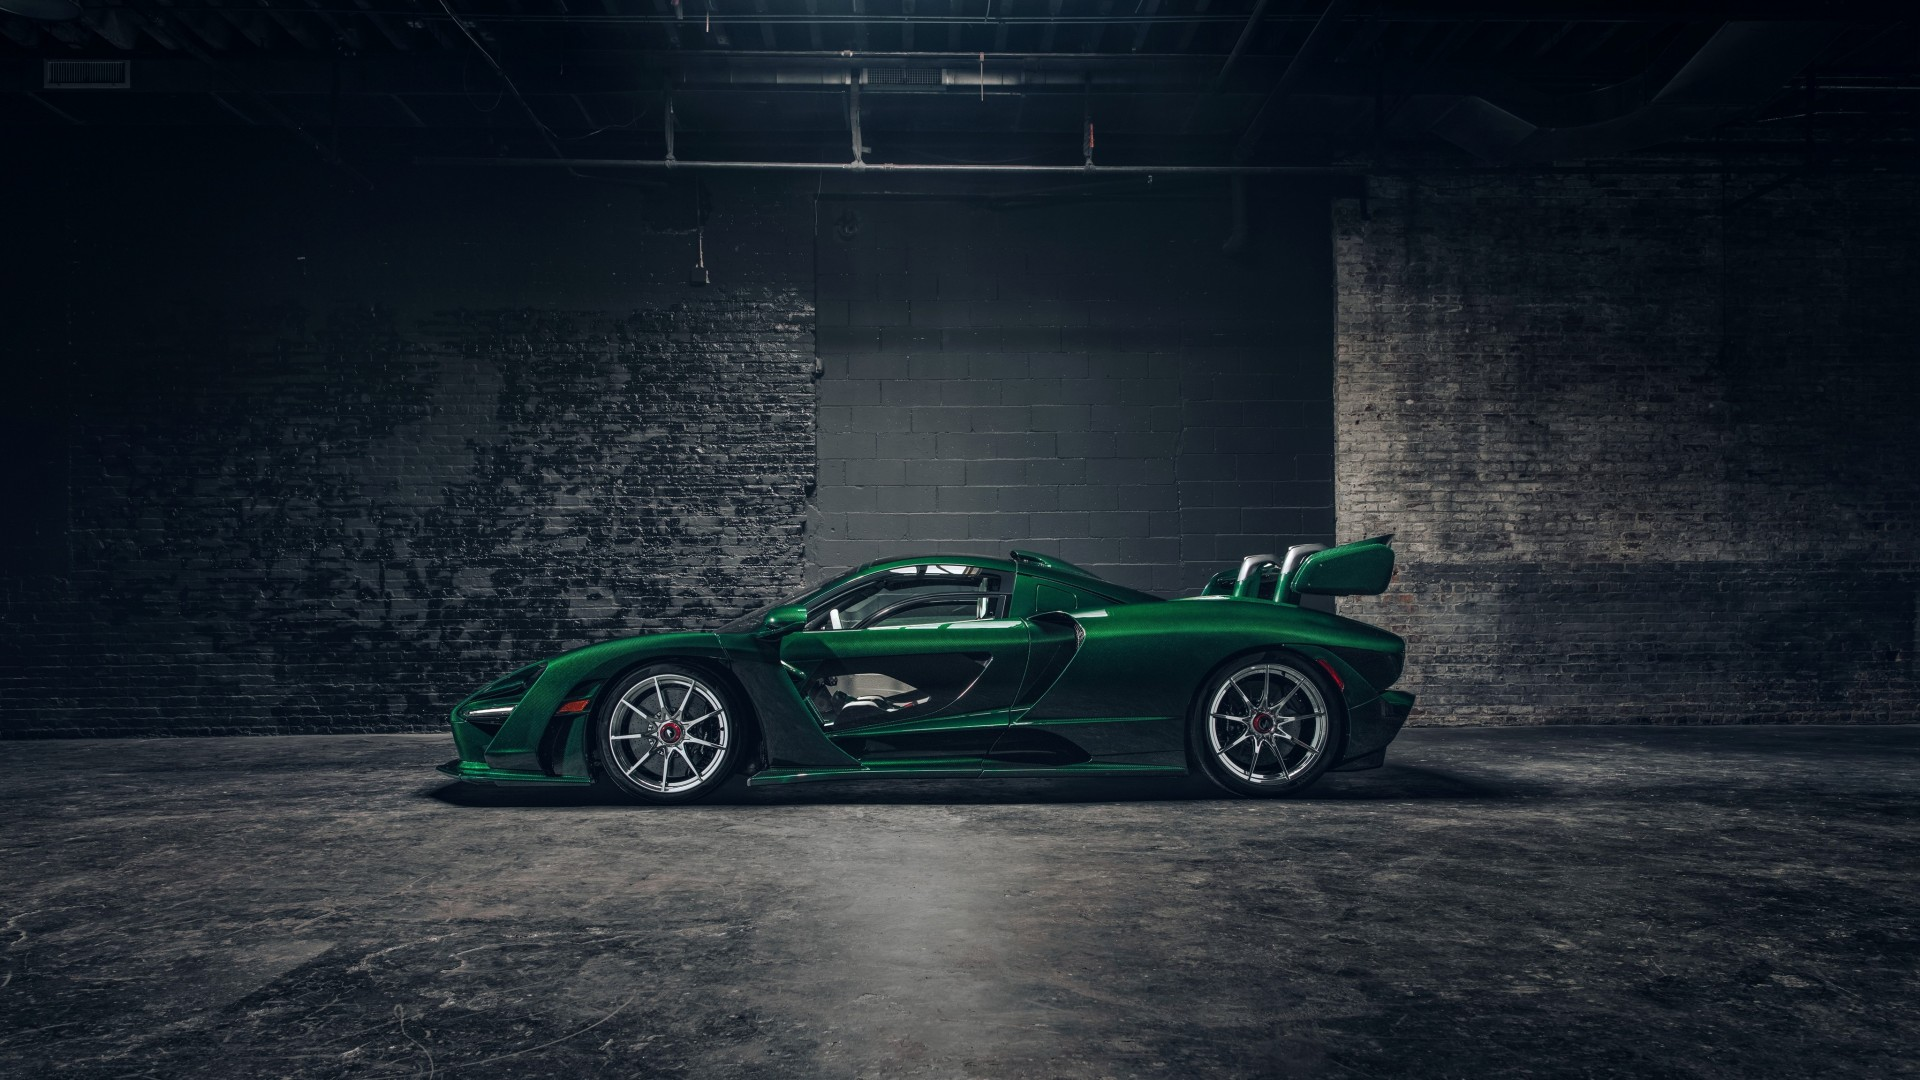 Travel Wallpaper Quotes Wallpaper Mclaren Senna Gtr Green Carbon Supercar 2018